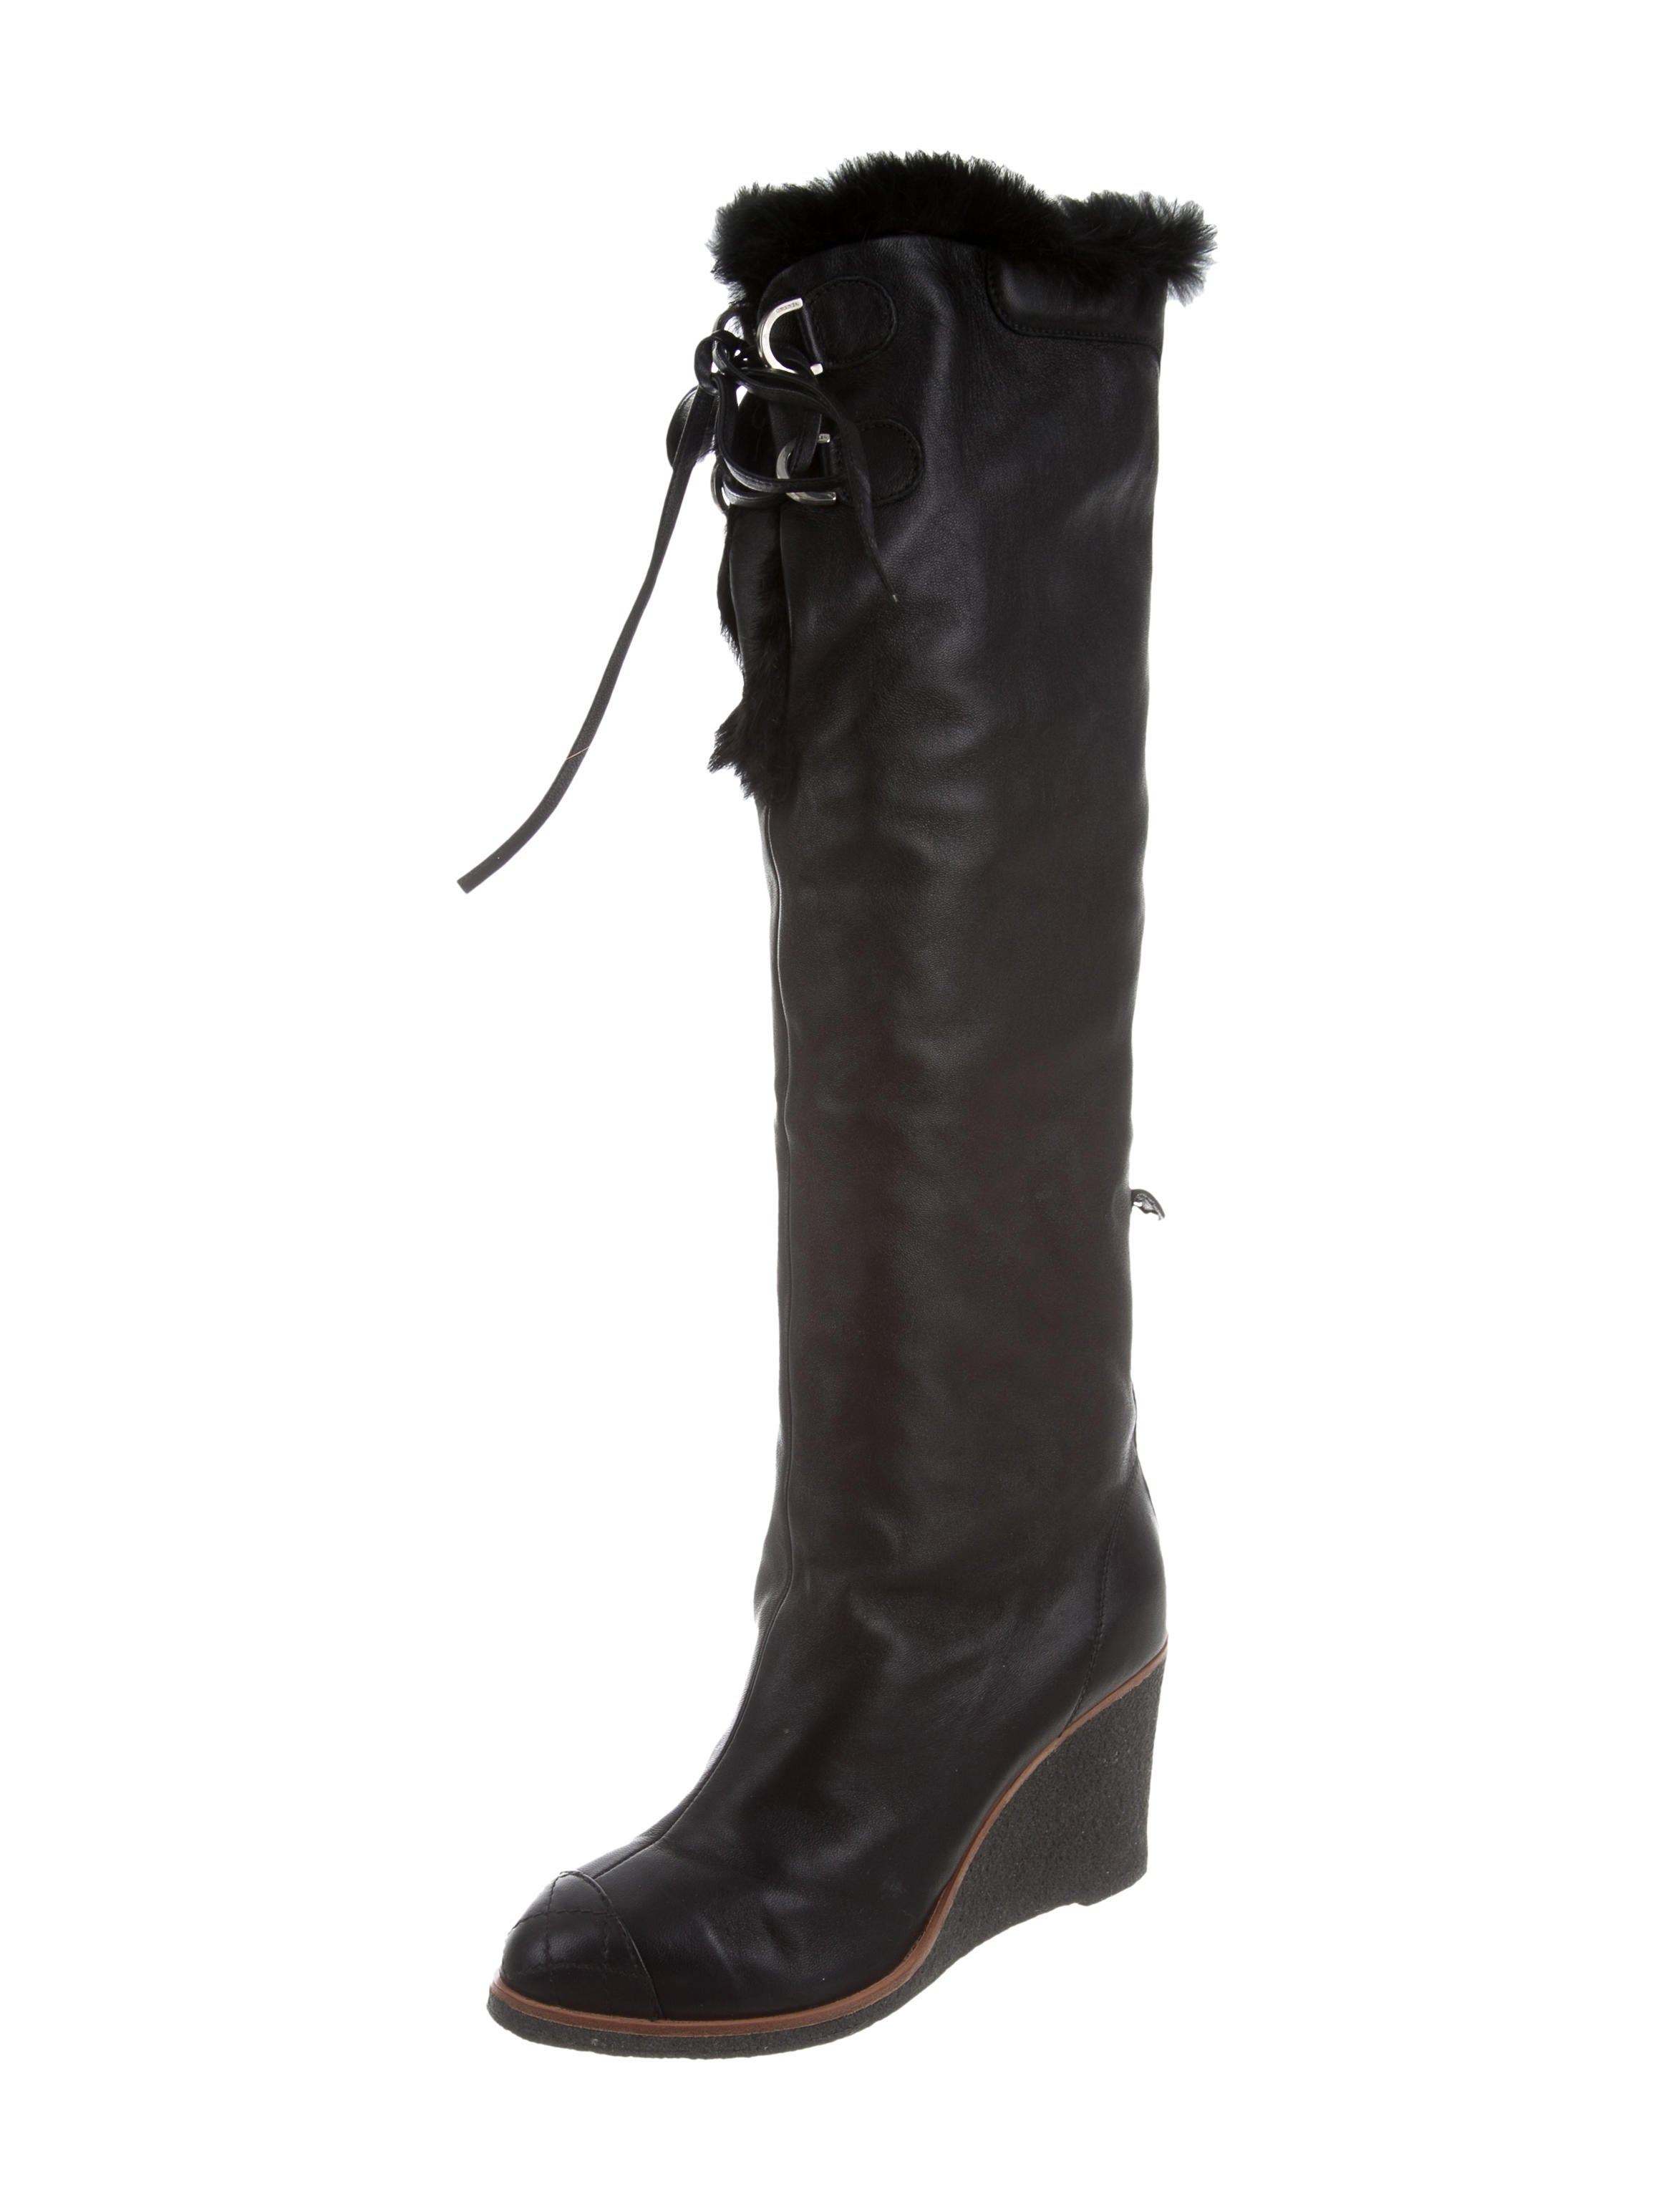 chanel fur trimmed wedge boots shoes cha157316 the